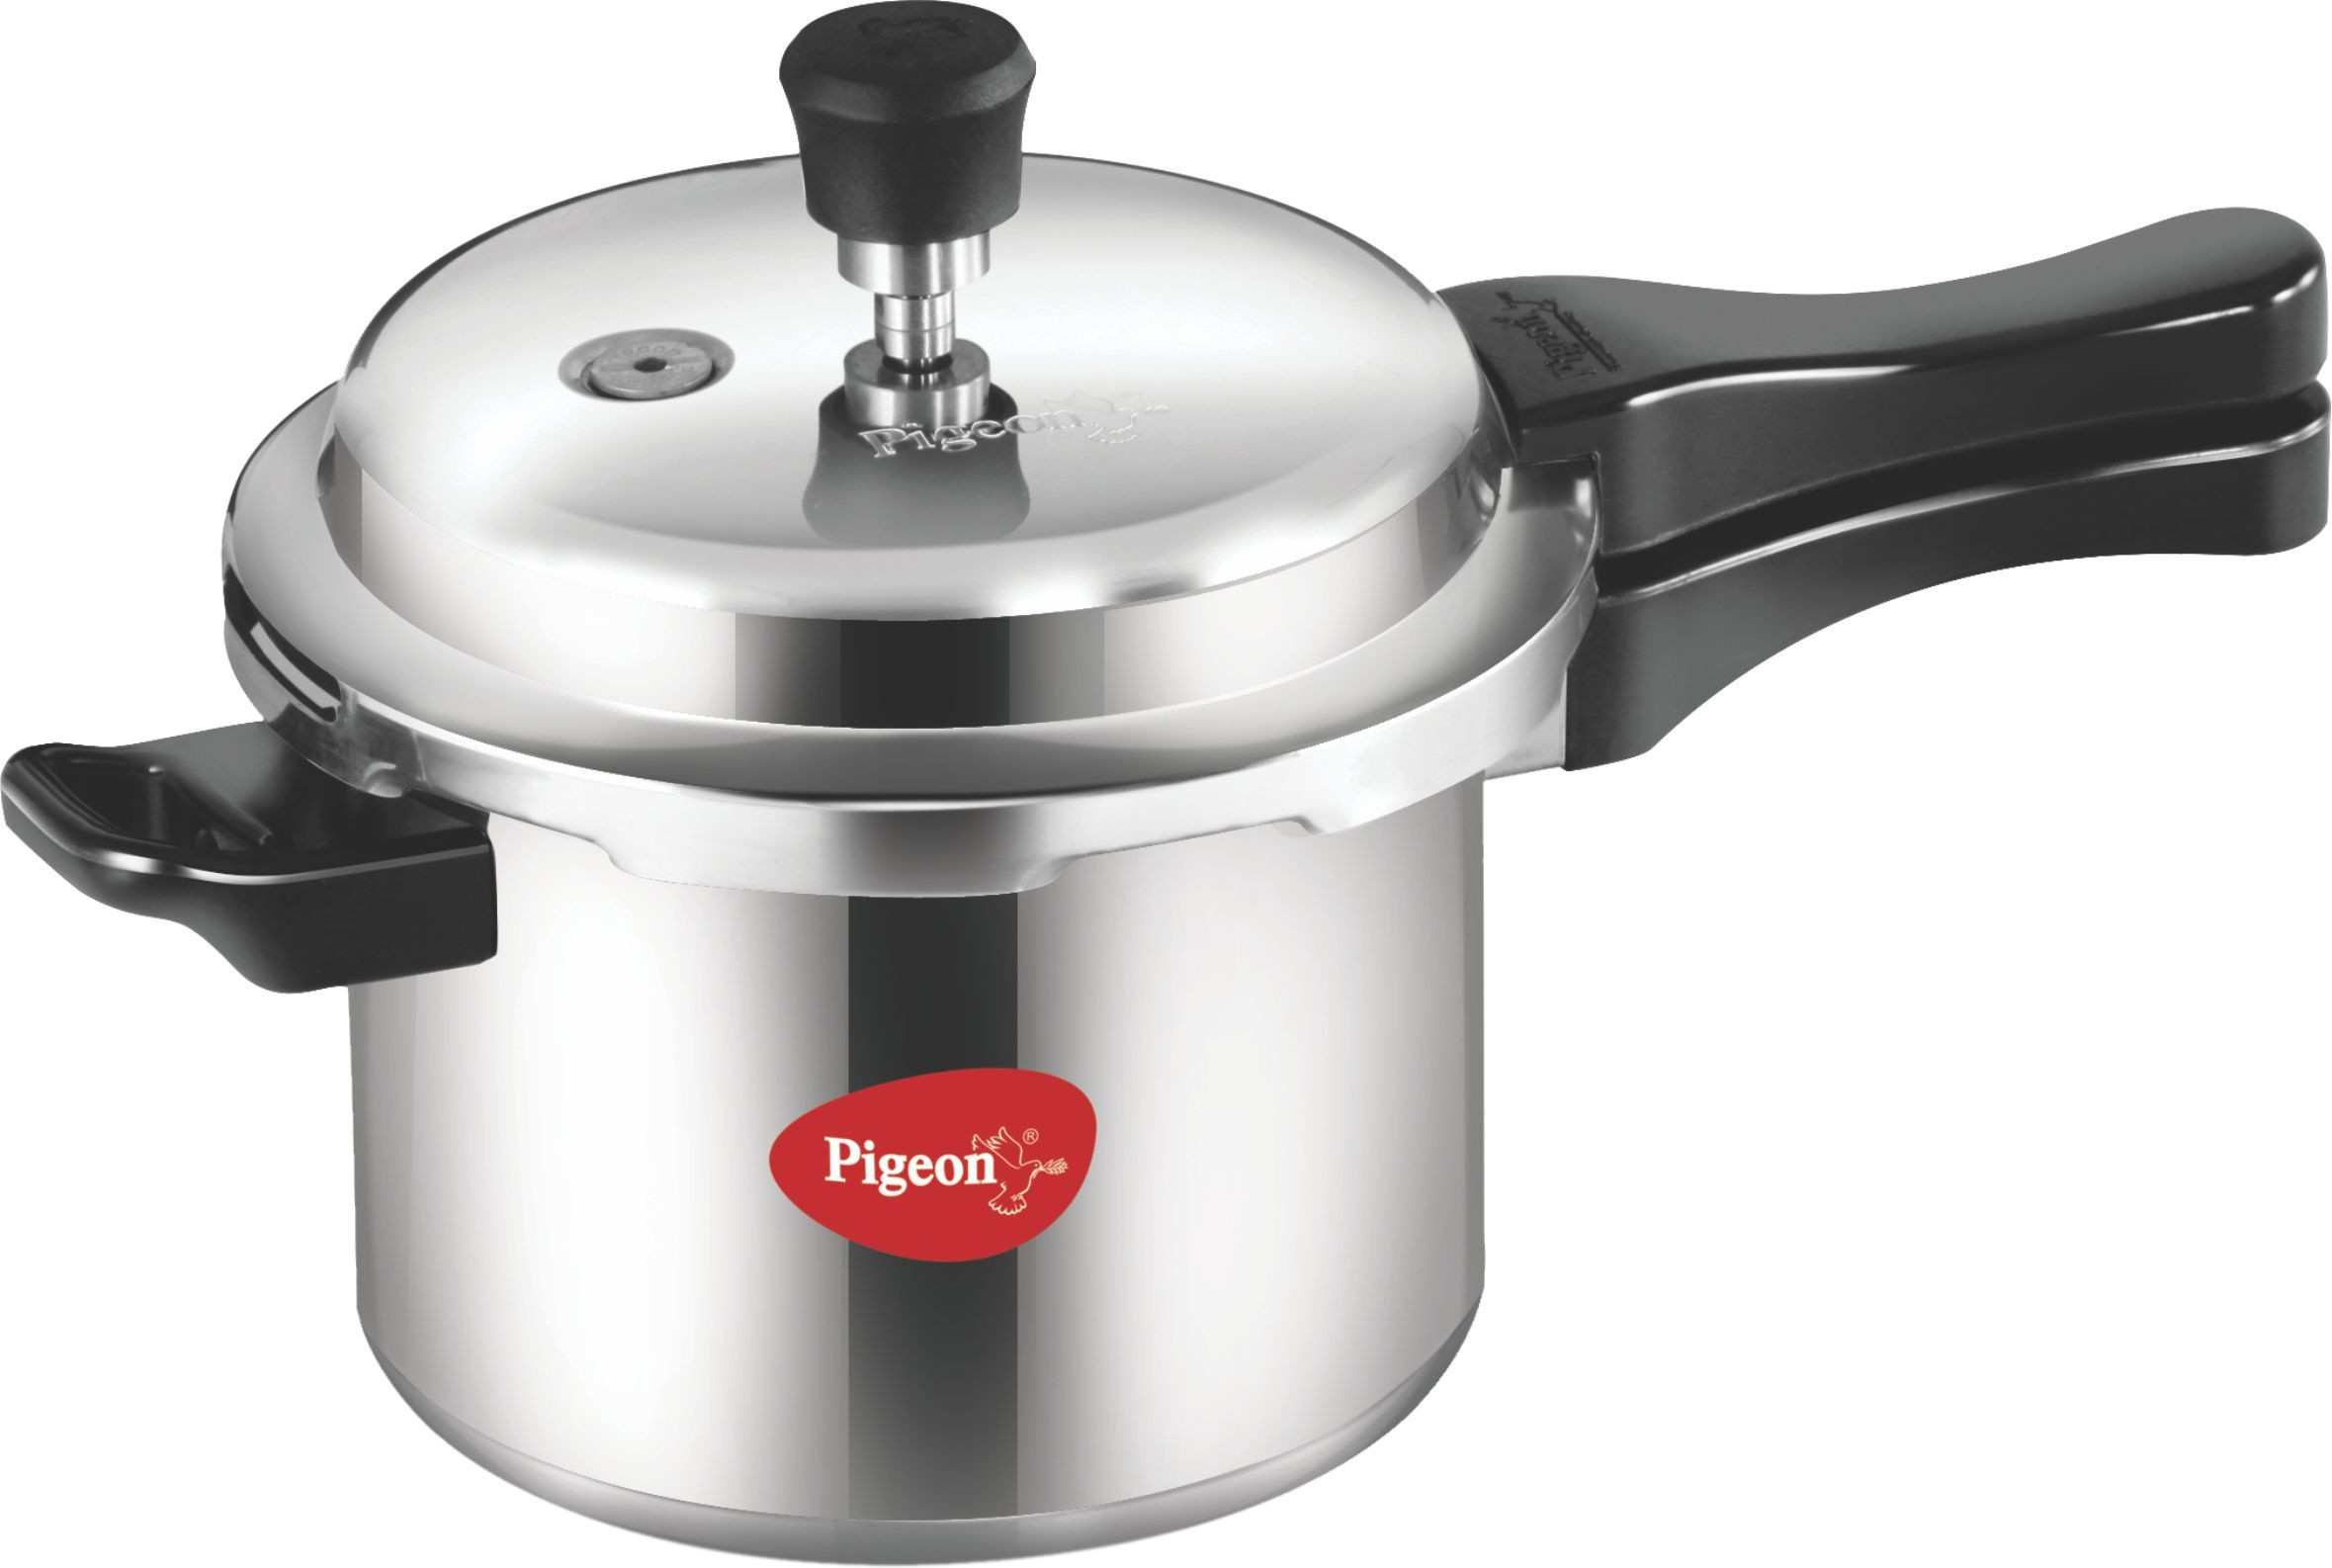 Pigeon Favourite Induction Base 5 L Pressure Cooker Flipkart